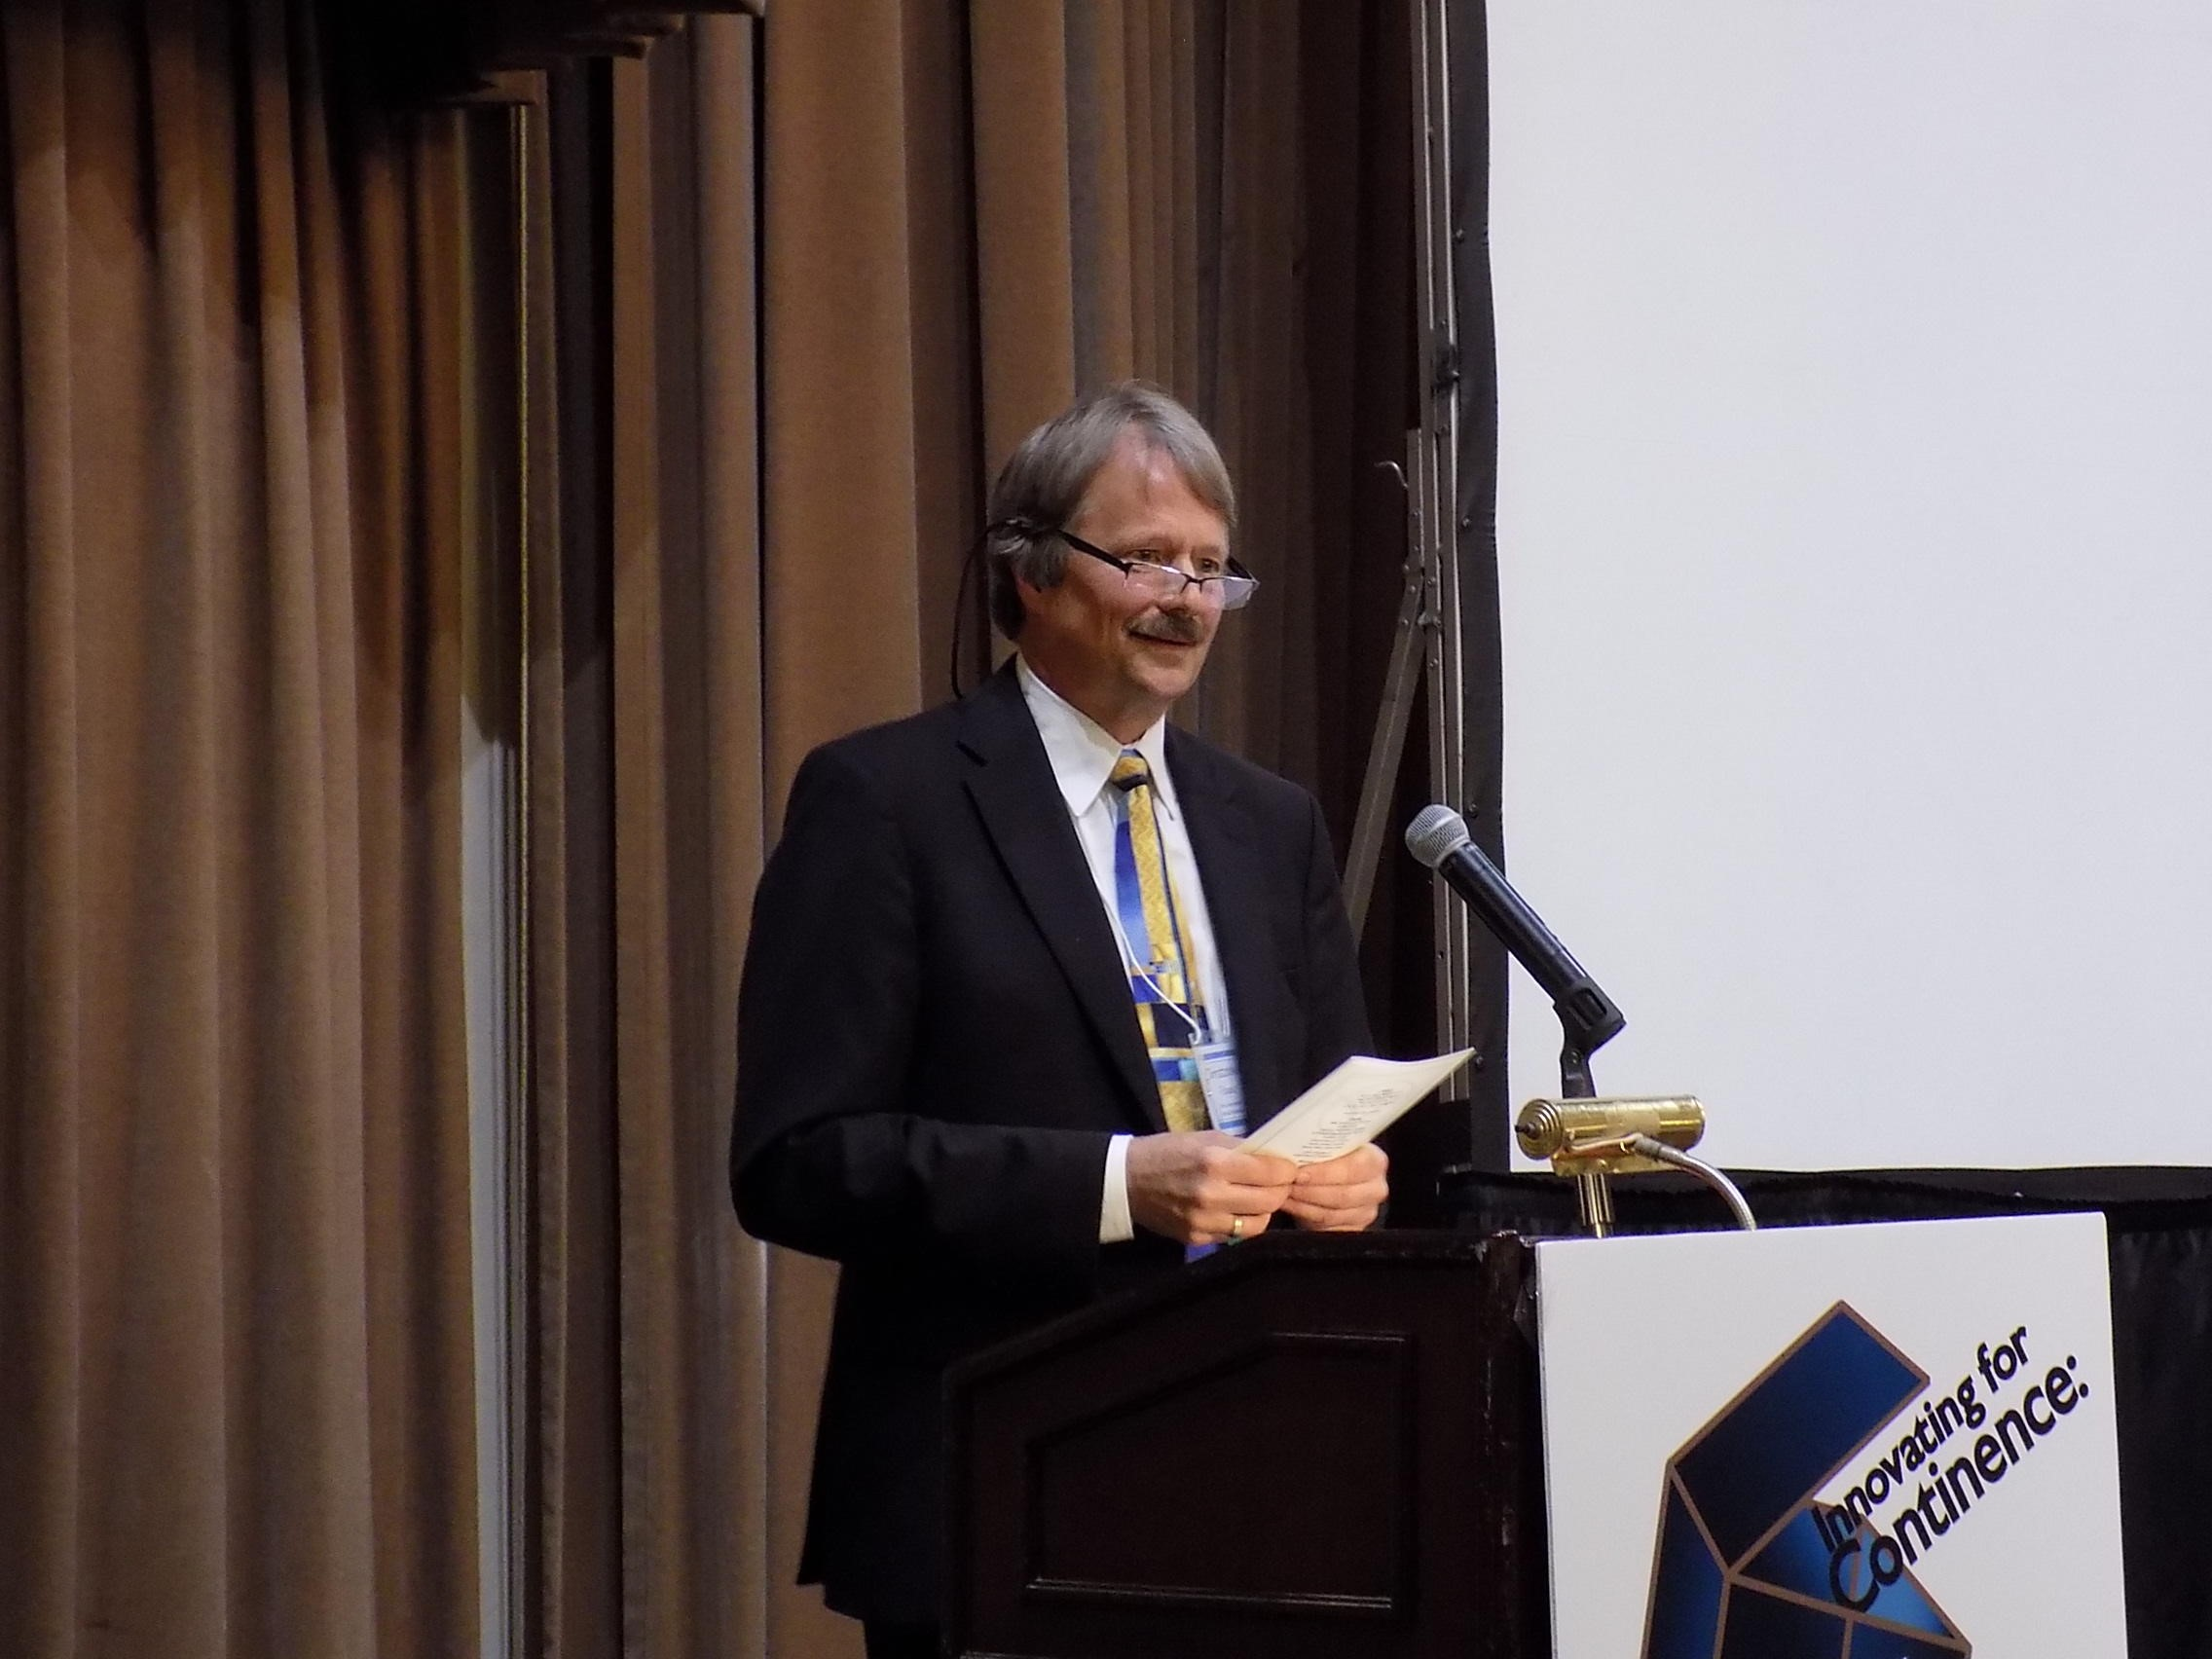 Christopher Payne, MD, announcing the two winners of the John J. Humpal Award